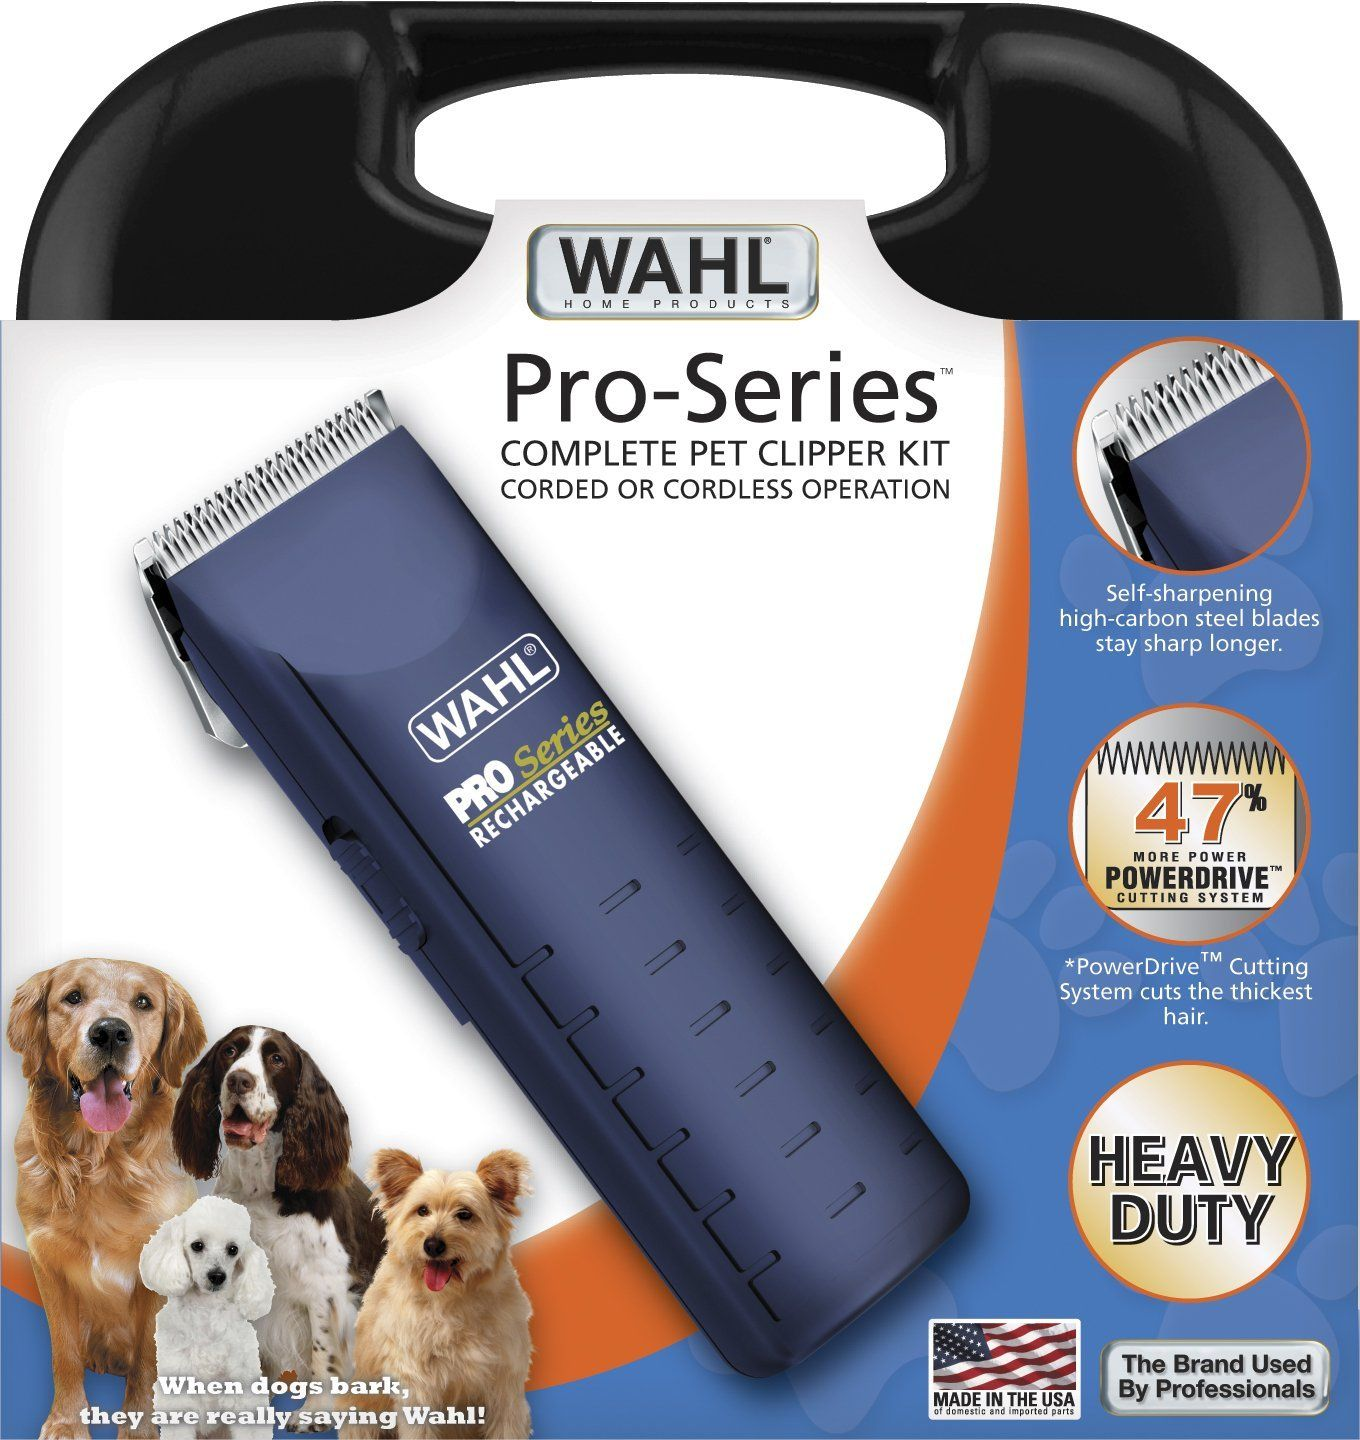 Best Dog Clippers For Cocker Spaniels 5 Crazy Amazing Tools Pet Grooming Dog Clippers Dog Grooming